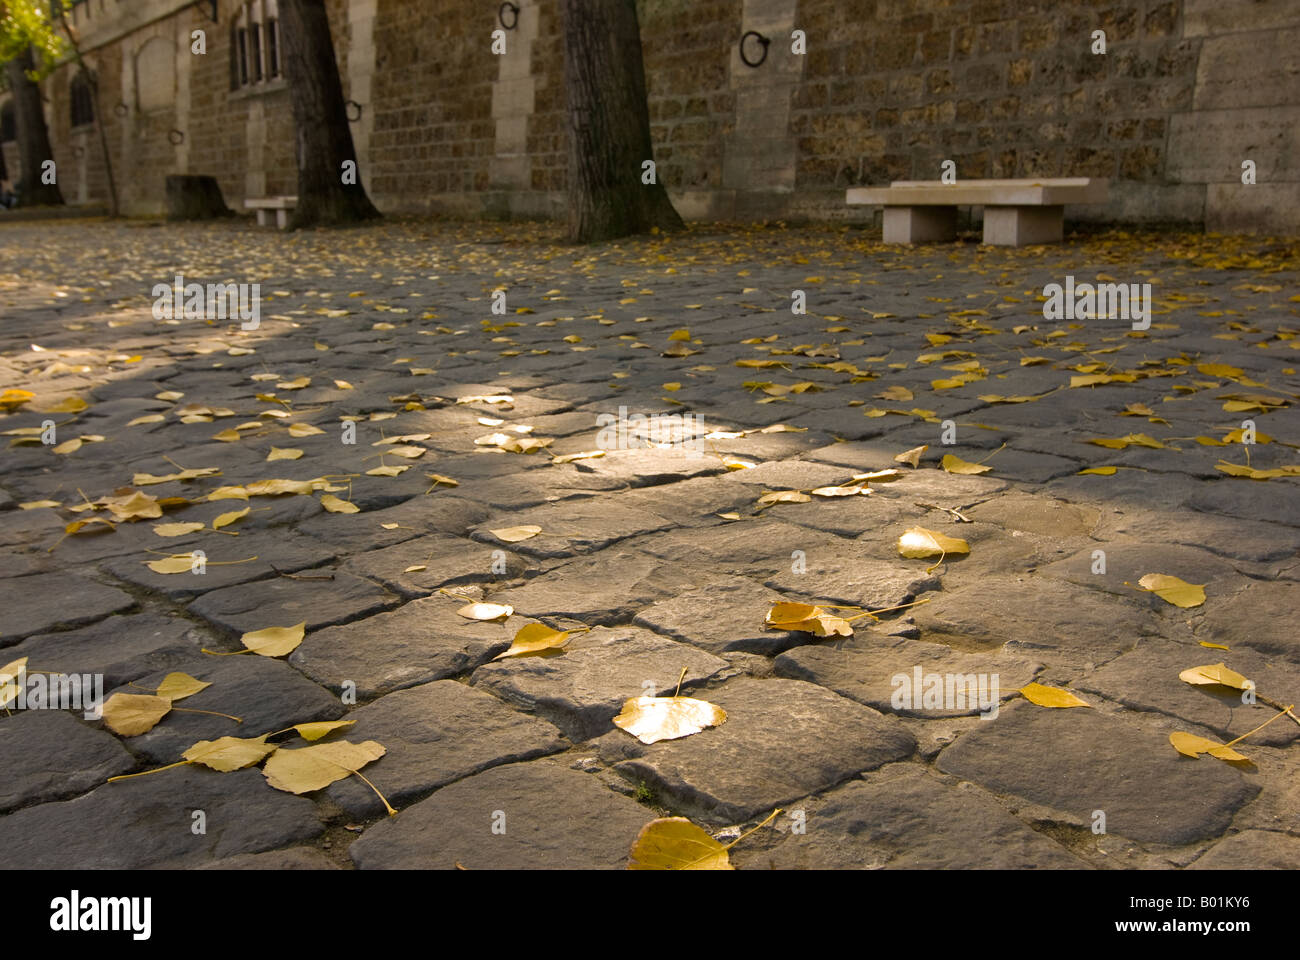 Fall leaves cover the cobblestone riverbank of Port de Montebello on the Left Bank in Paris France - Stock Image